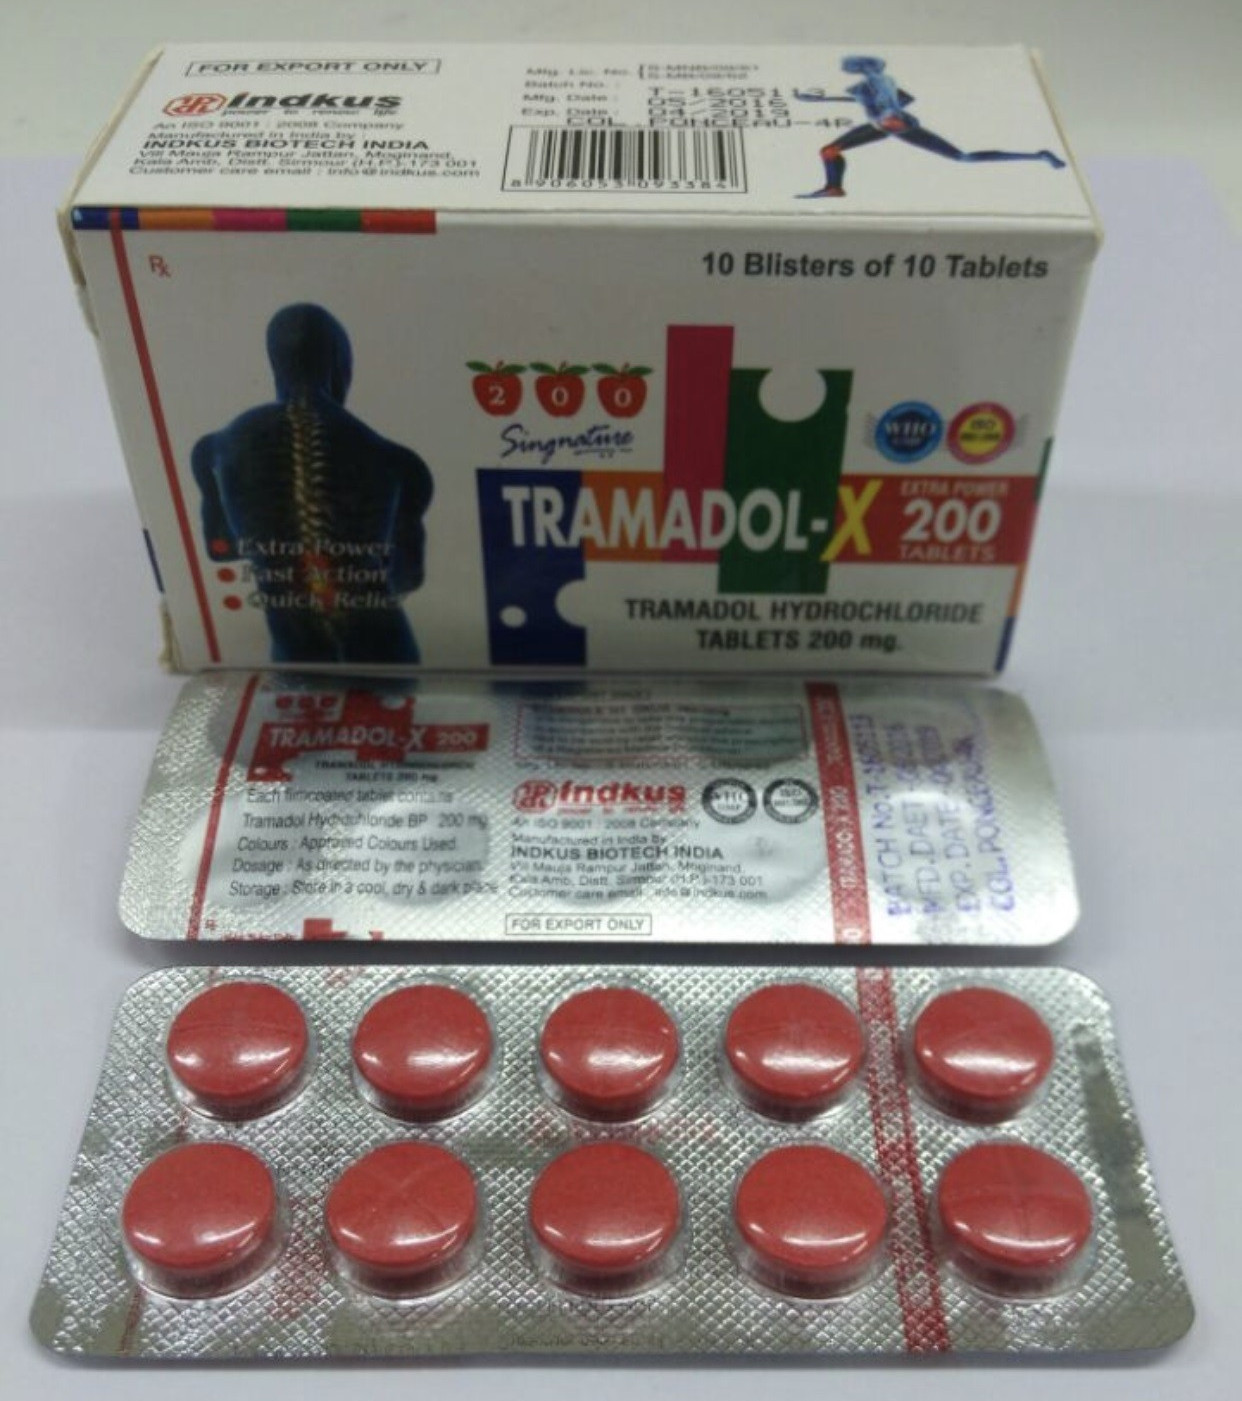 tramadol Tramadol is an opioid analgesic used for the therapy of mild-to-moderate pain tramadol overdose can cause acute liver failure pharmacologic use of tramadol has not.